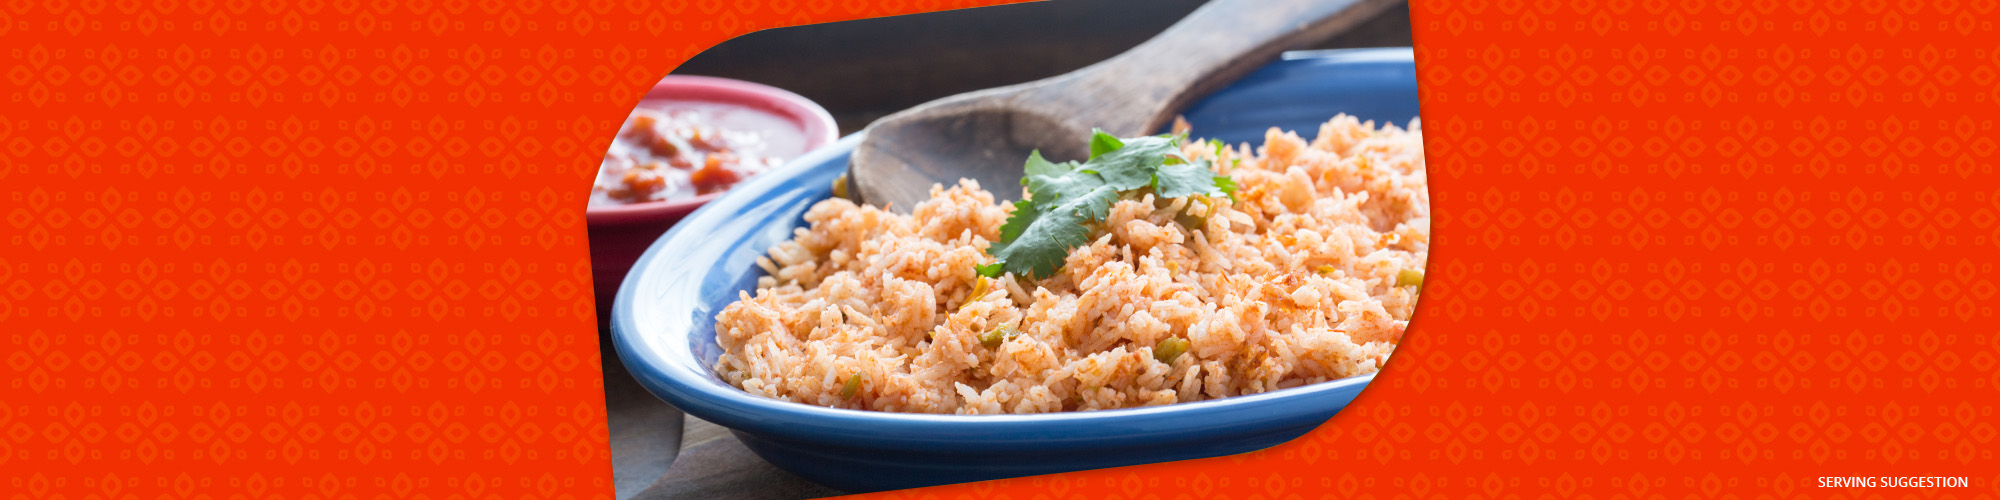 Salsas mexican rice with salsa and green chiles